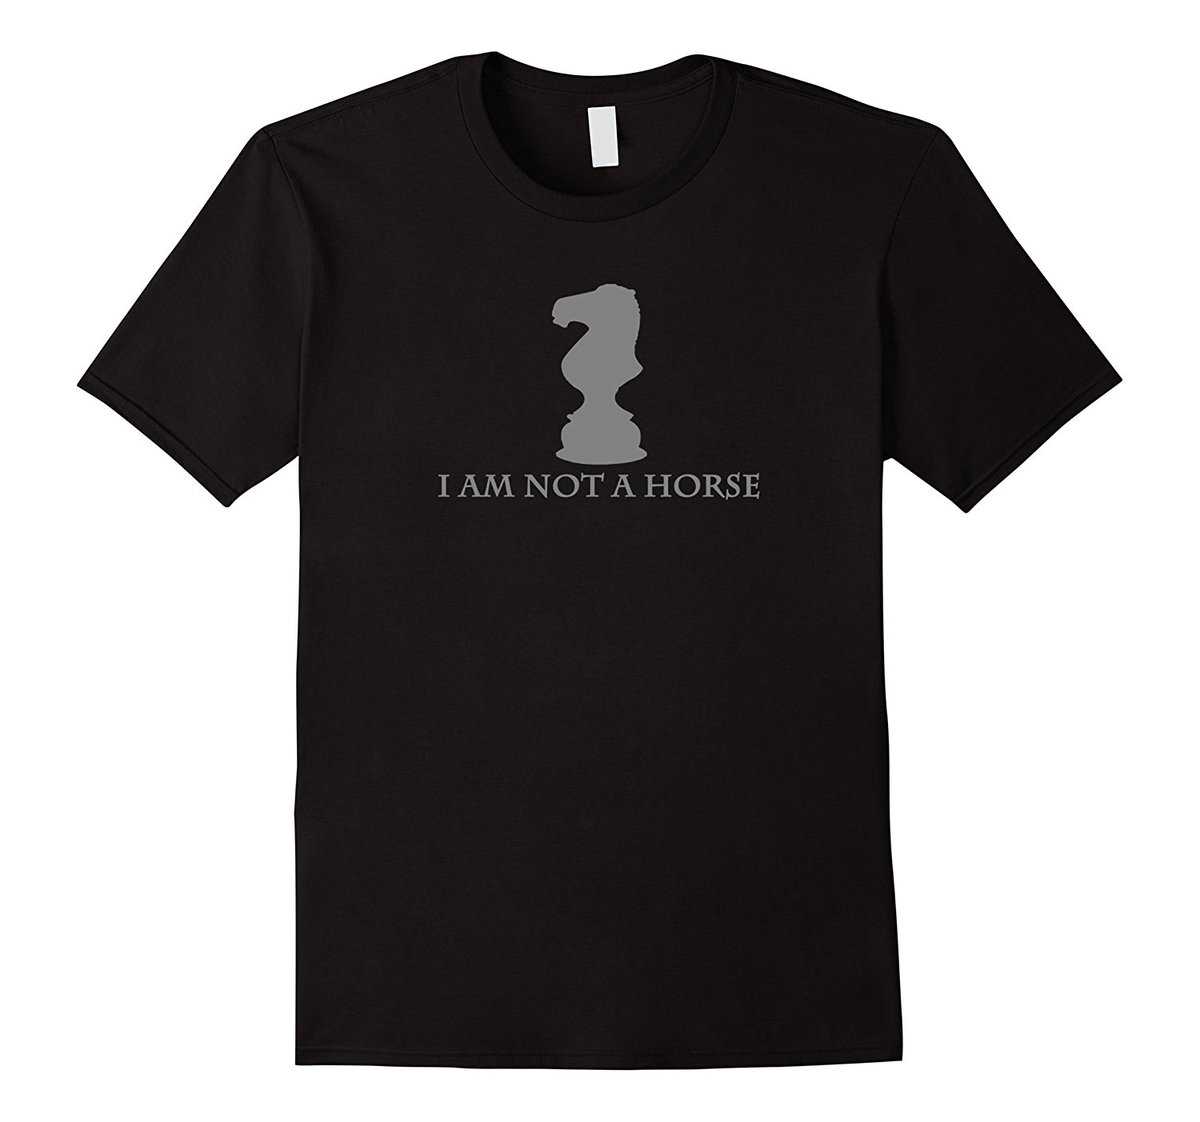 I Am Not A Horse Funny Chess Piece Shirt Summer Short Sleeve Shirts Tops S 3Xl Big Size CottonTees Newest 2018 New Arrival Men in T Shirts from Men 39 s Clothing